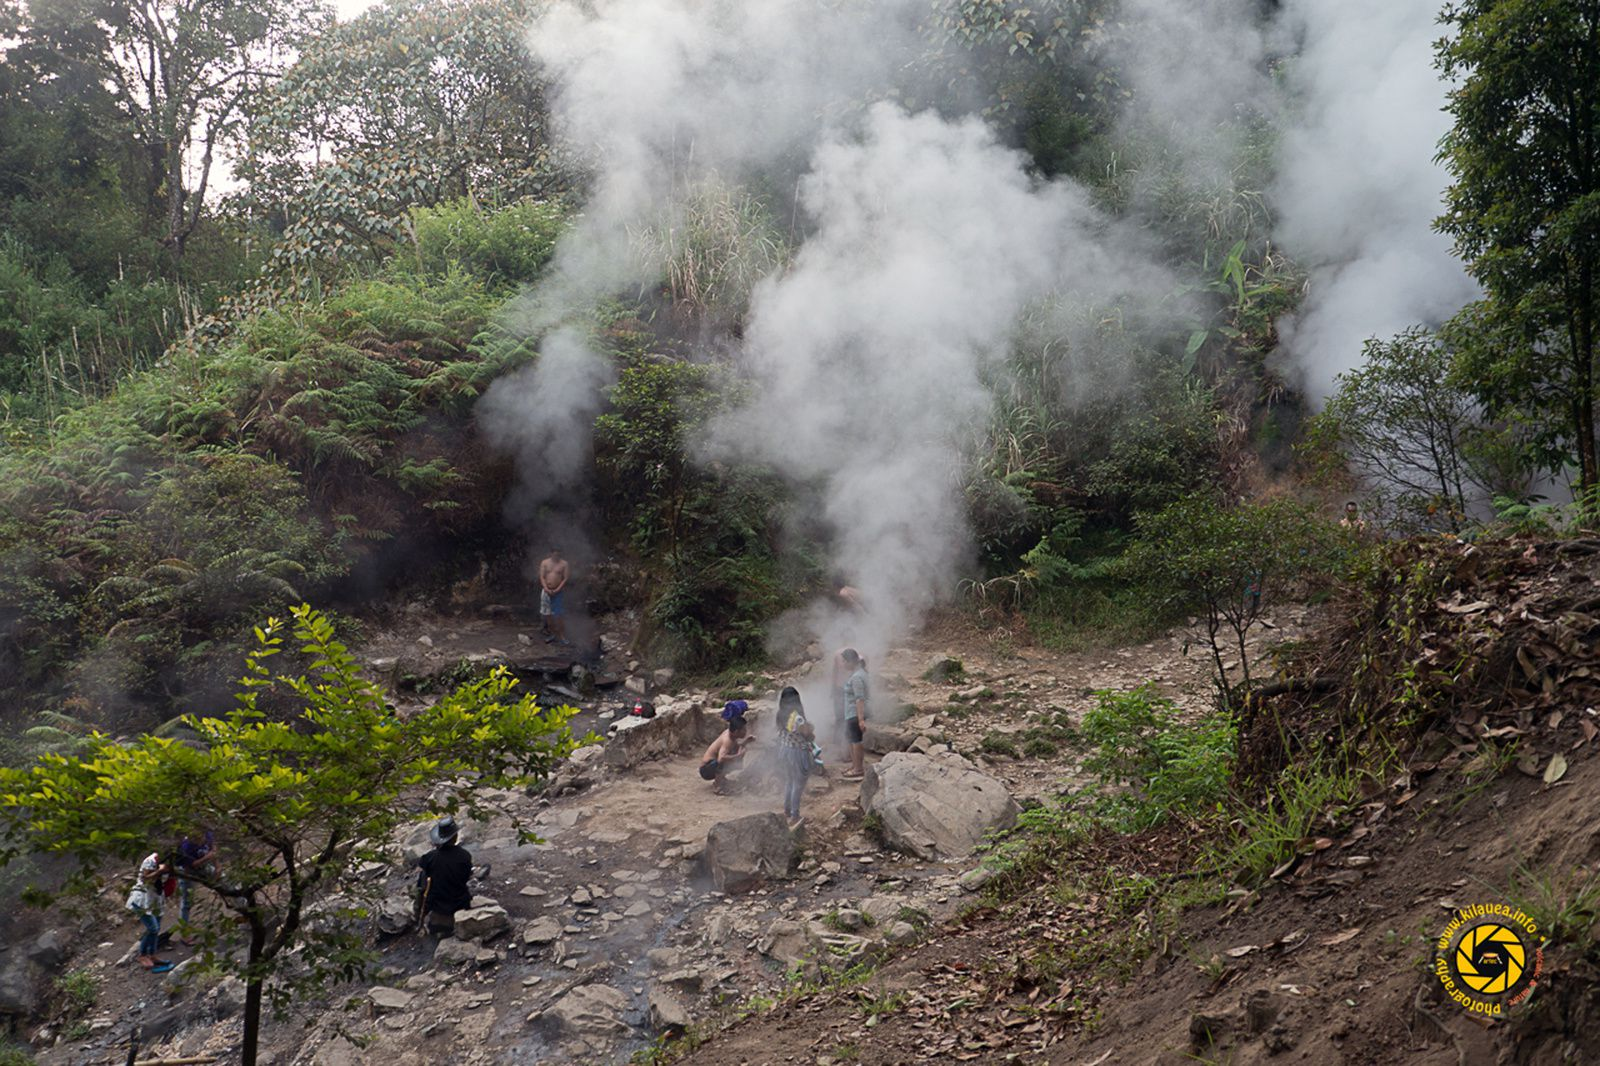 Geothermal field Kawah Kamojang - Indonesians take advantage of volcano's vapors - Photo © 2015 Jean-Michel Mestdagh